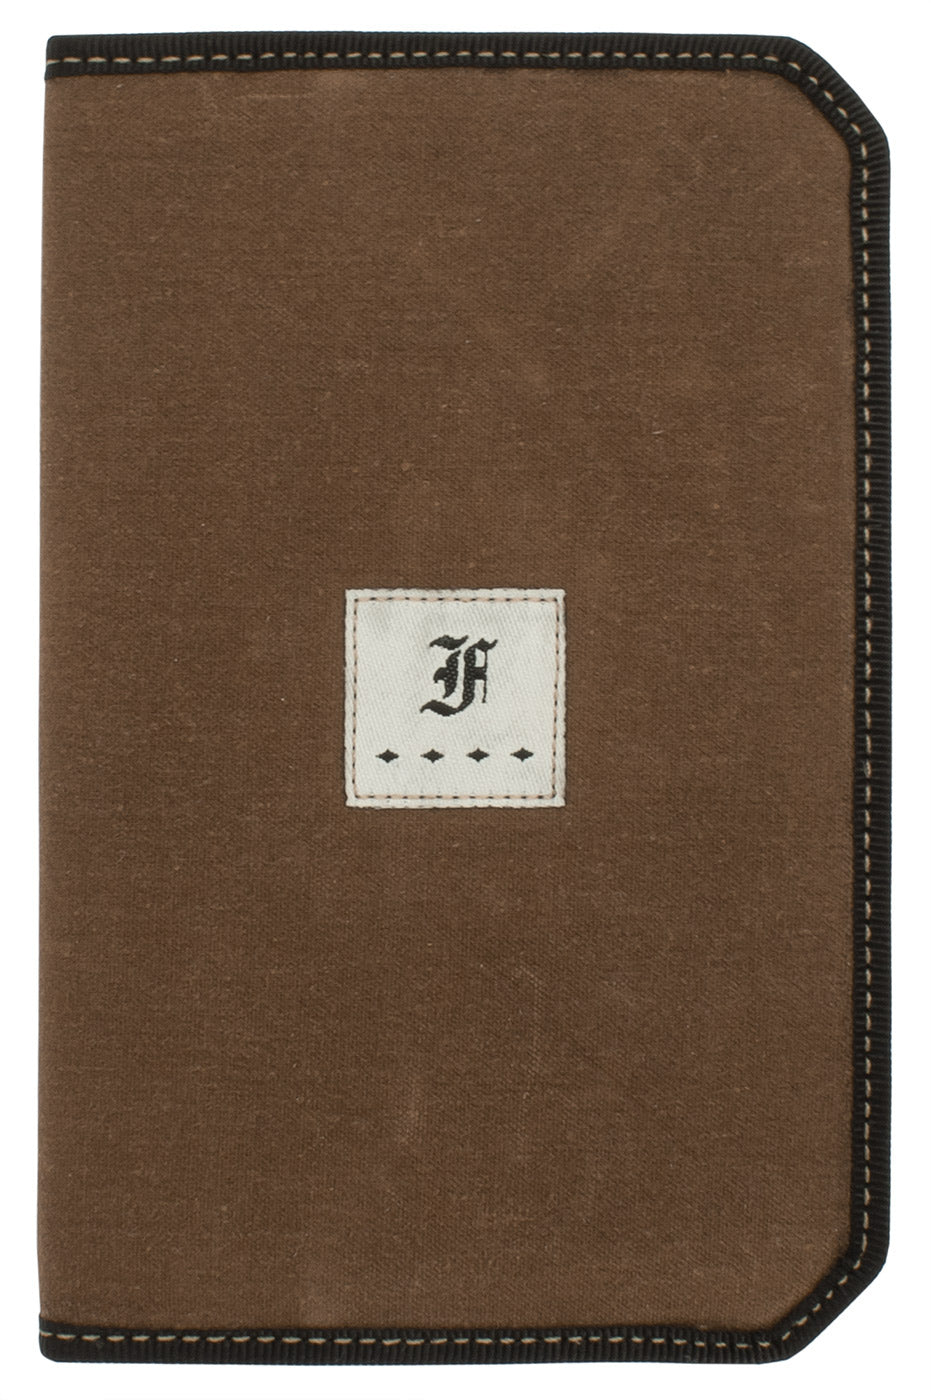 Franklin Christoph 5.3 Pocket Notebook Cover - Umber Canvas